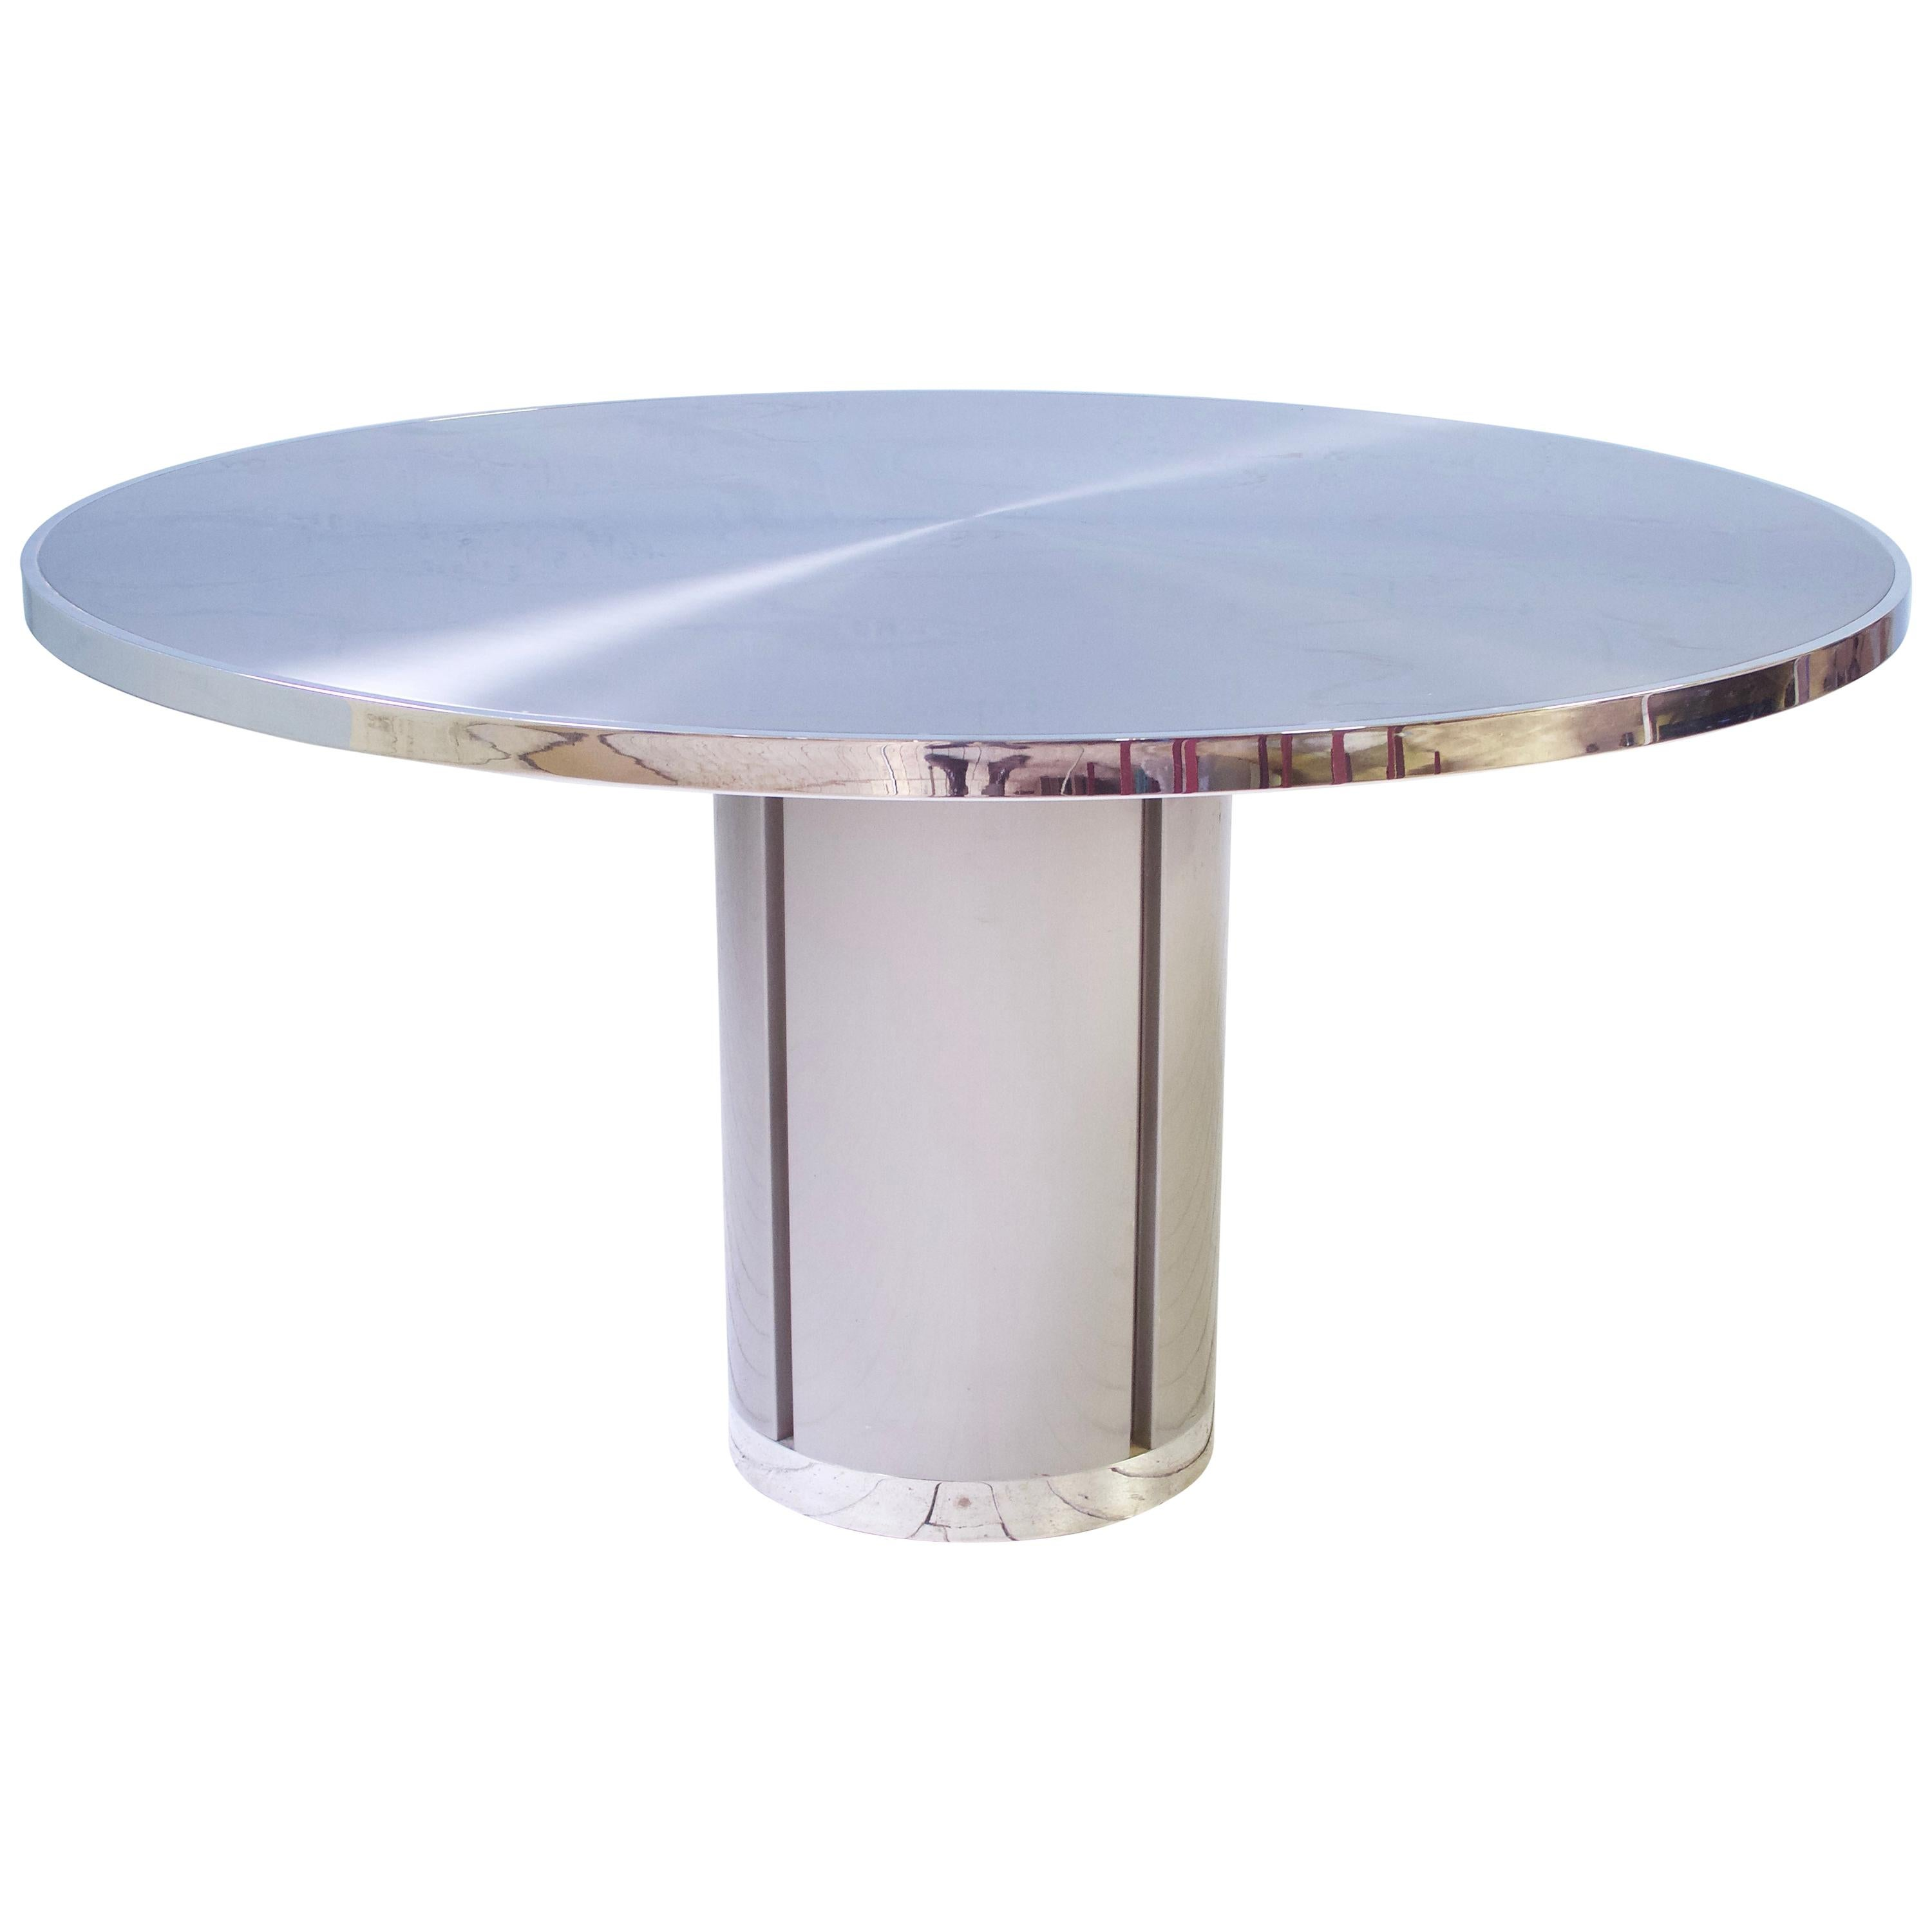 Vintage Round Pedestal Dining Table in Aluminum & Chrome, Italy, 1970s